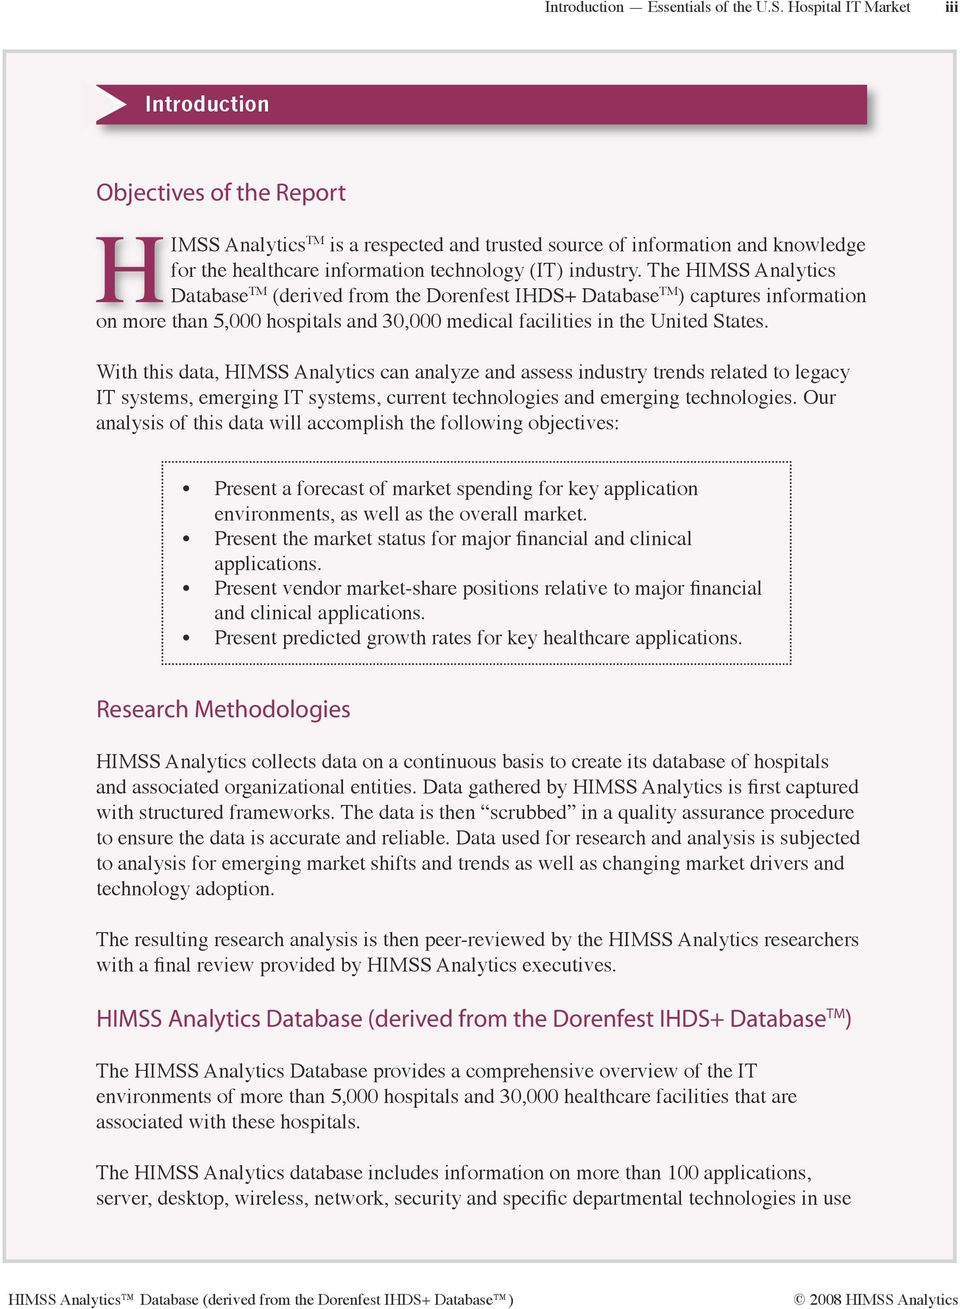 The HIMSS Analytics Database TM (derived from the Dorenfest IHDS+ Database TM ) captures information on more than 5,000 hospitals and 30,000 medical facilities in the United States.